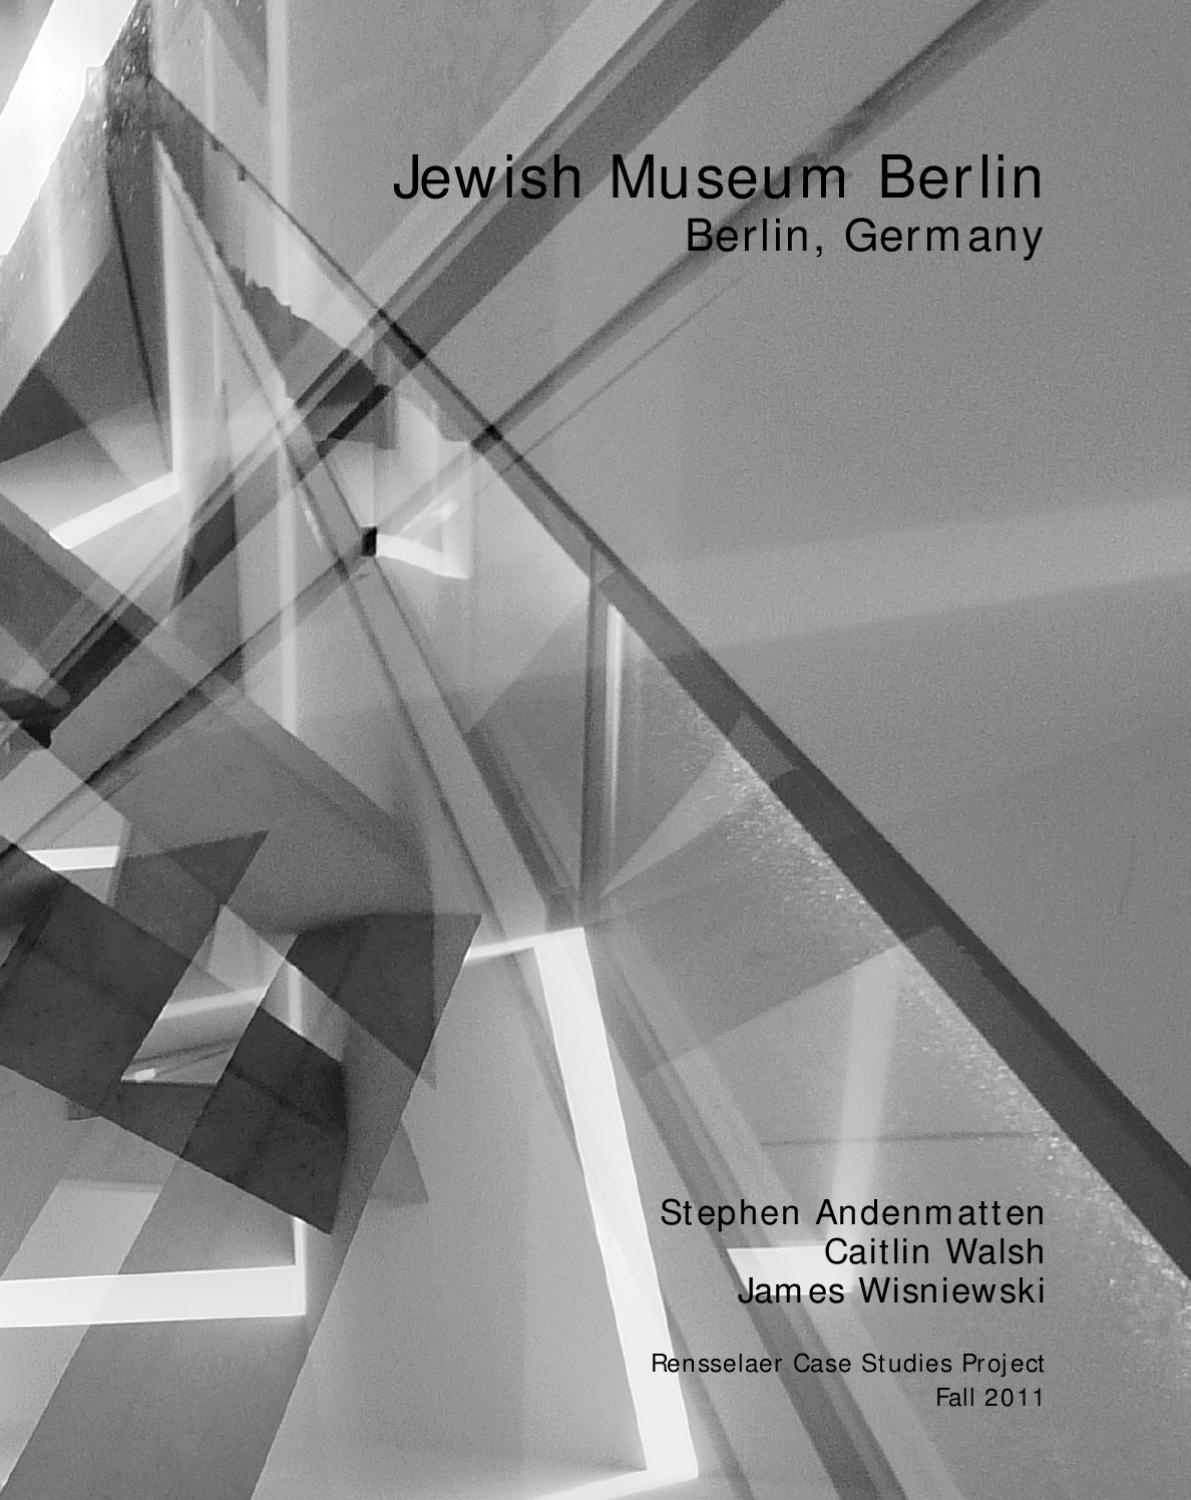 Jewish Cemetery At Grosse Hamburger Strasse In Berlin Germany Case Study Jewish Museum Berlin By Daniel Libeskind